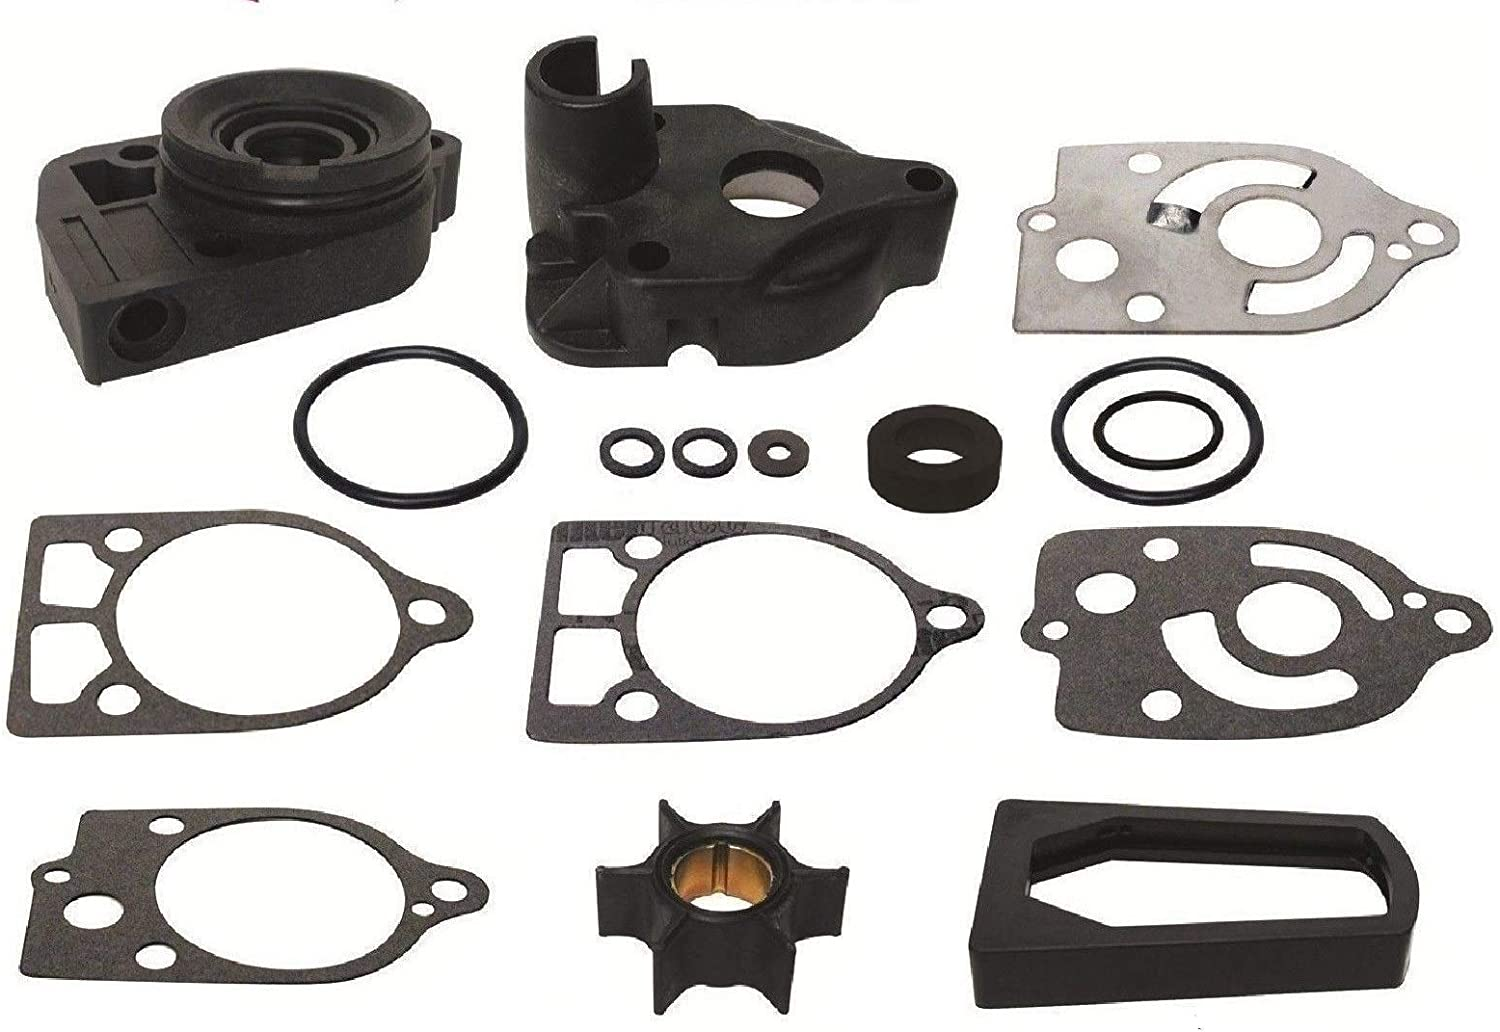 GLM Water Pump Impeller Kit for Mercury 30 35 40 45 50 60 65 70 Hp Replaces 46-77177A3, 18-3324 Read Product Description for Exact Applications